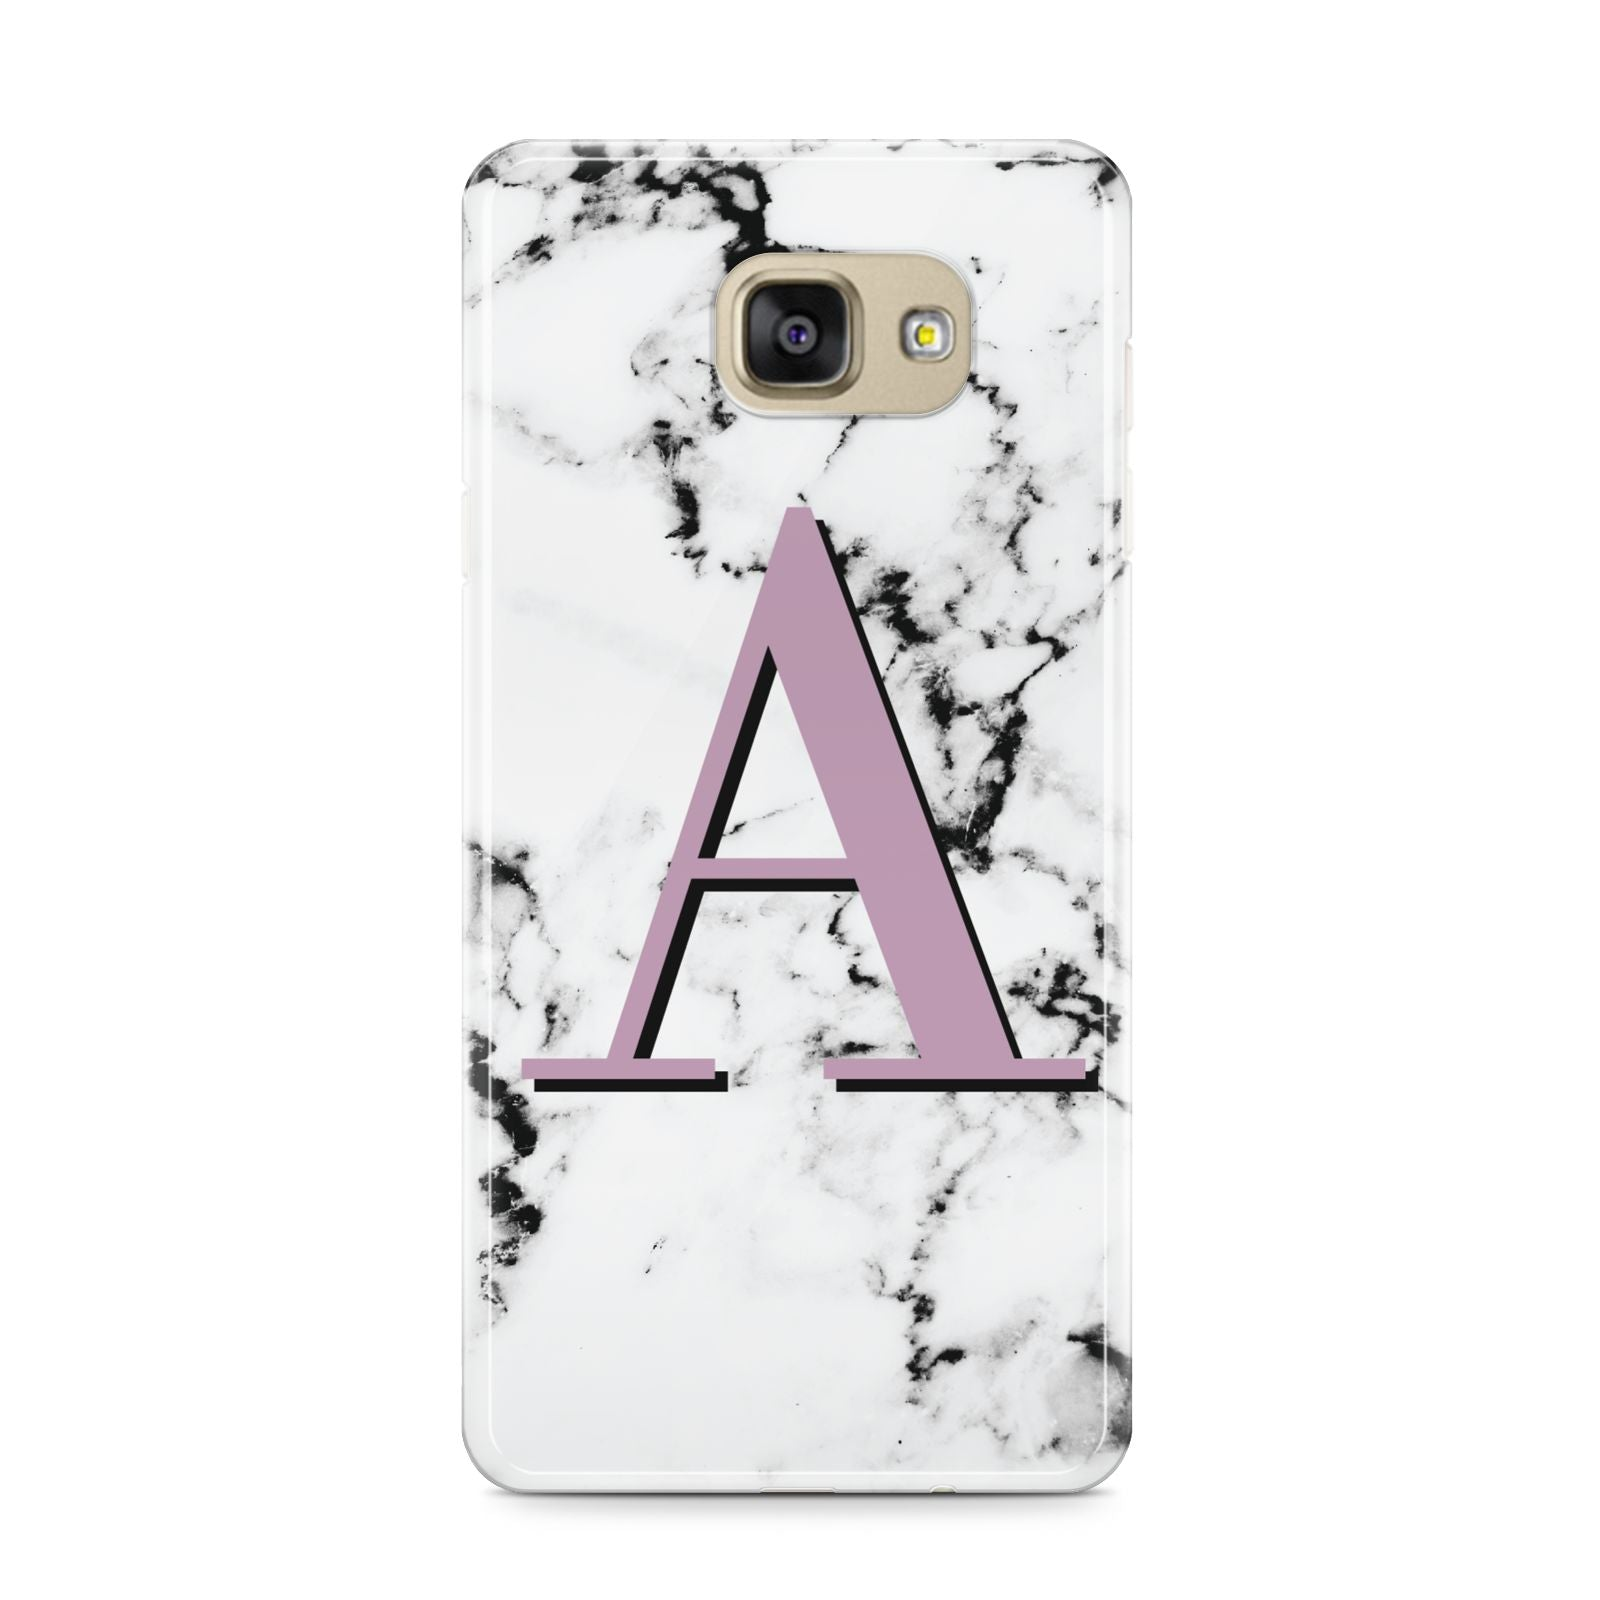 Personalised Purple Single Initial Marble Samsung Galaxy A9 2016 Case on gold phone